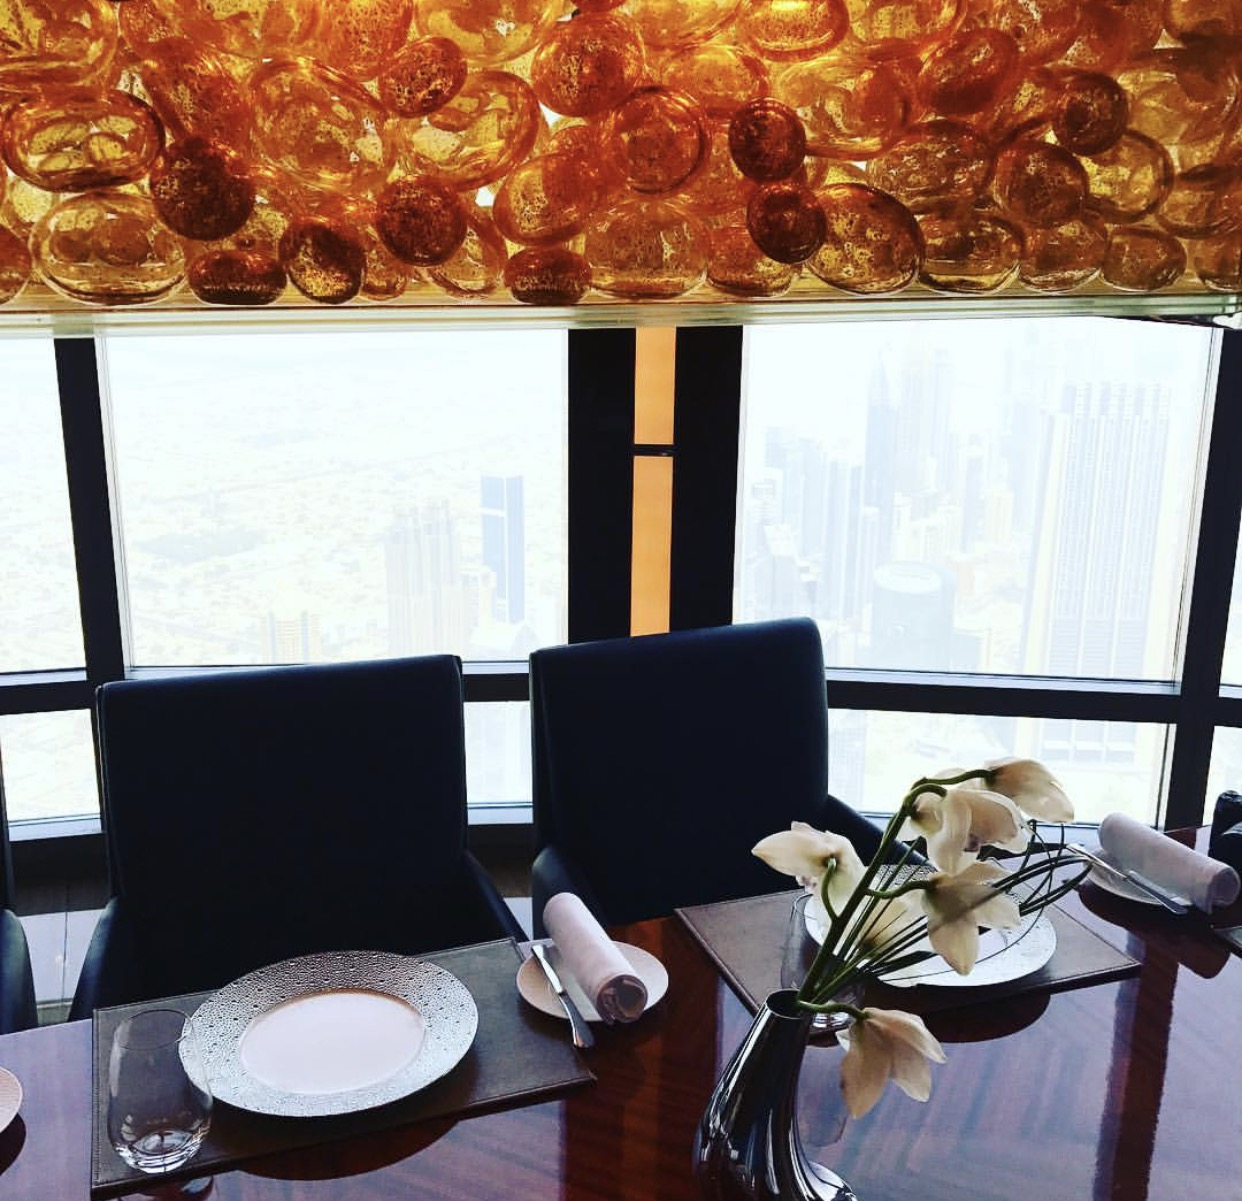 The private dining space at atmosphere